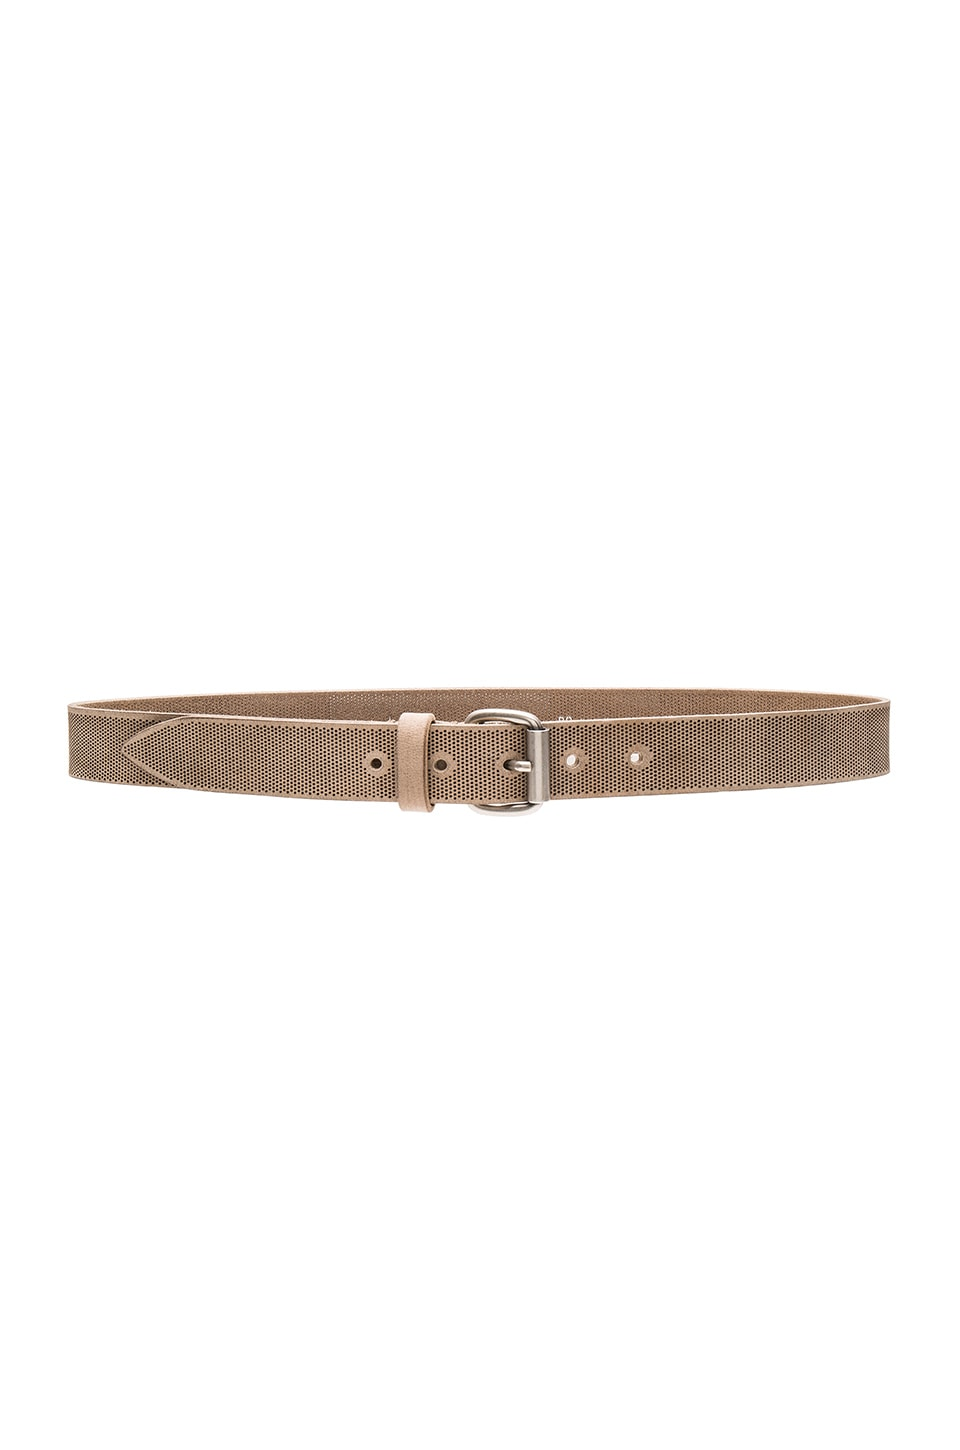 IRO Mareva Belt in Taupe